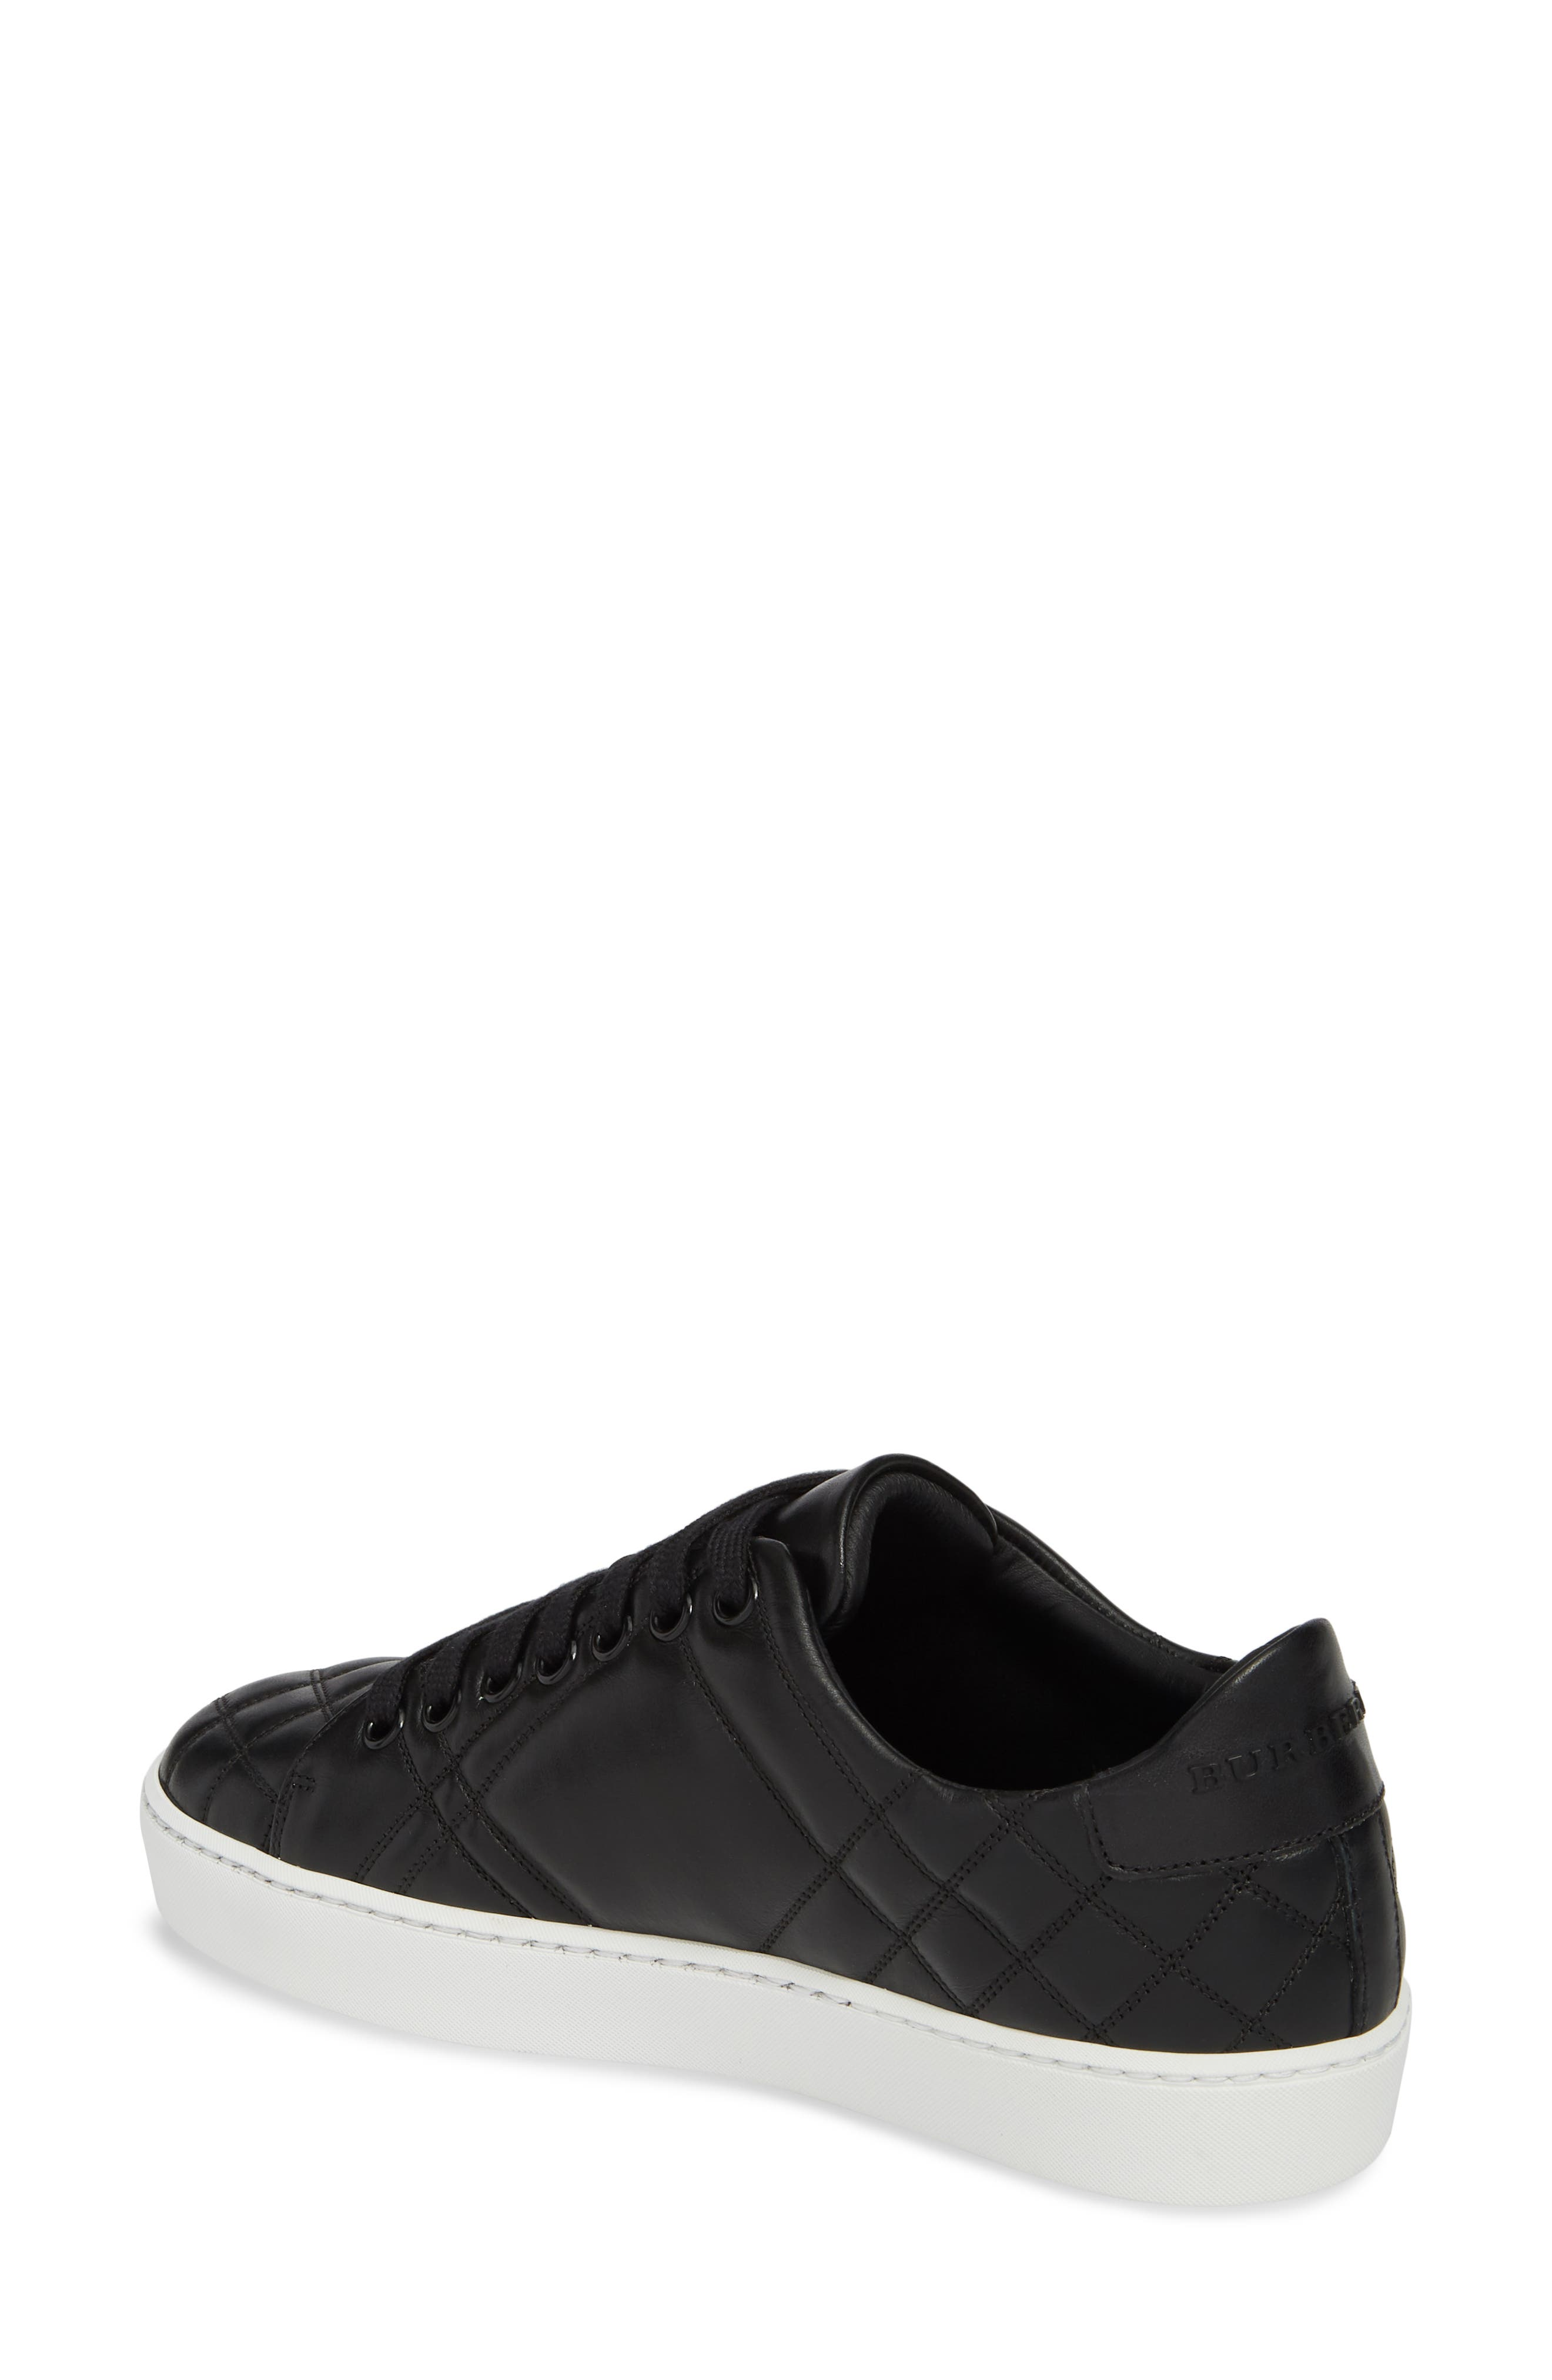 Check Quilted Leather Sneaker,                             Alternate thumbnail 2, color,                             Black Leather